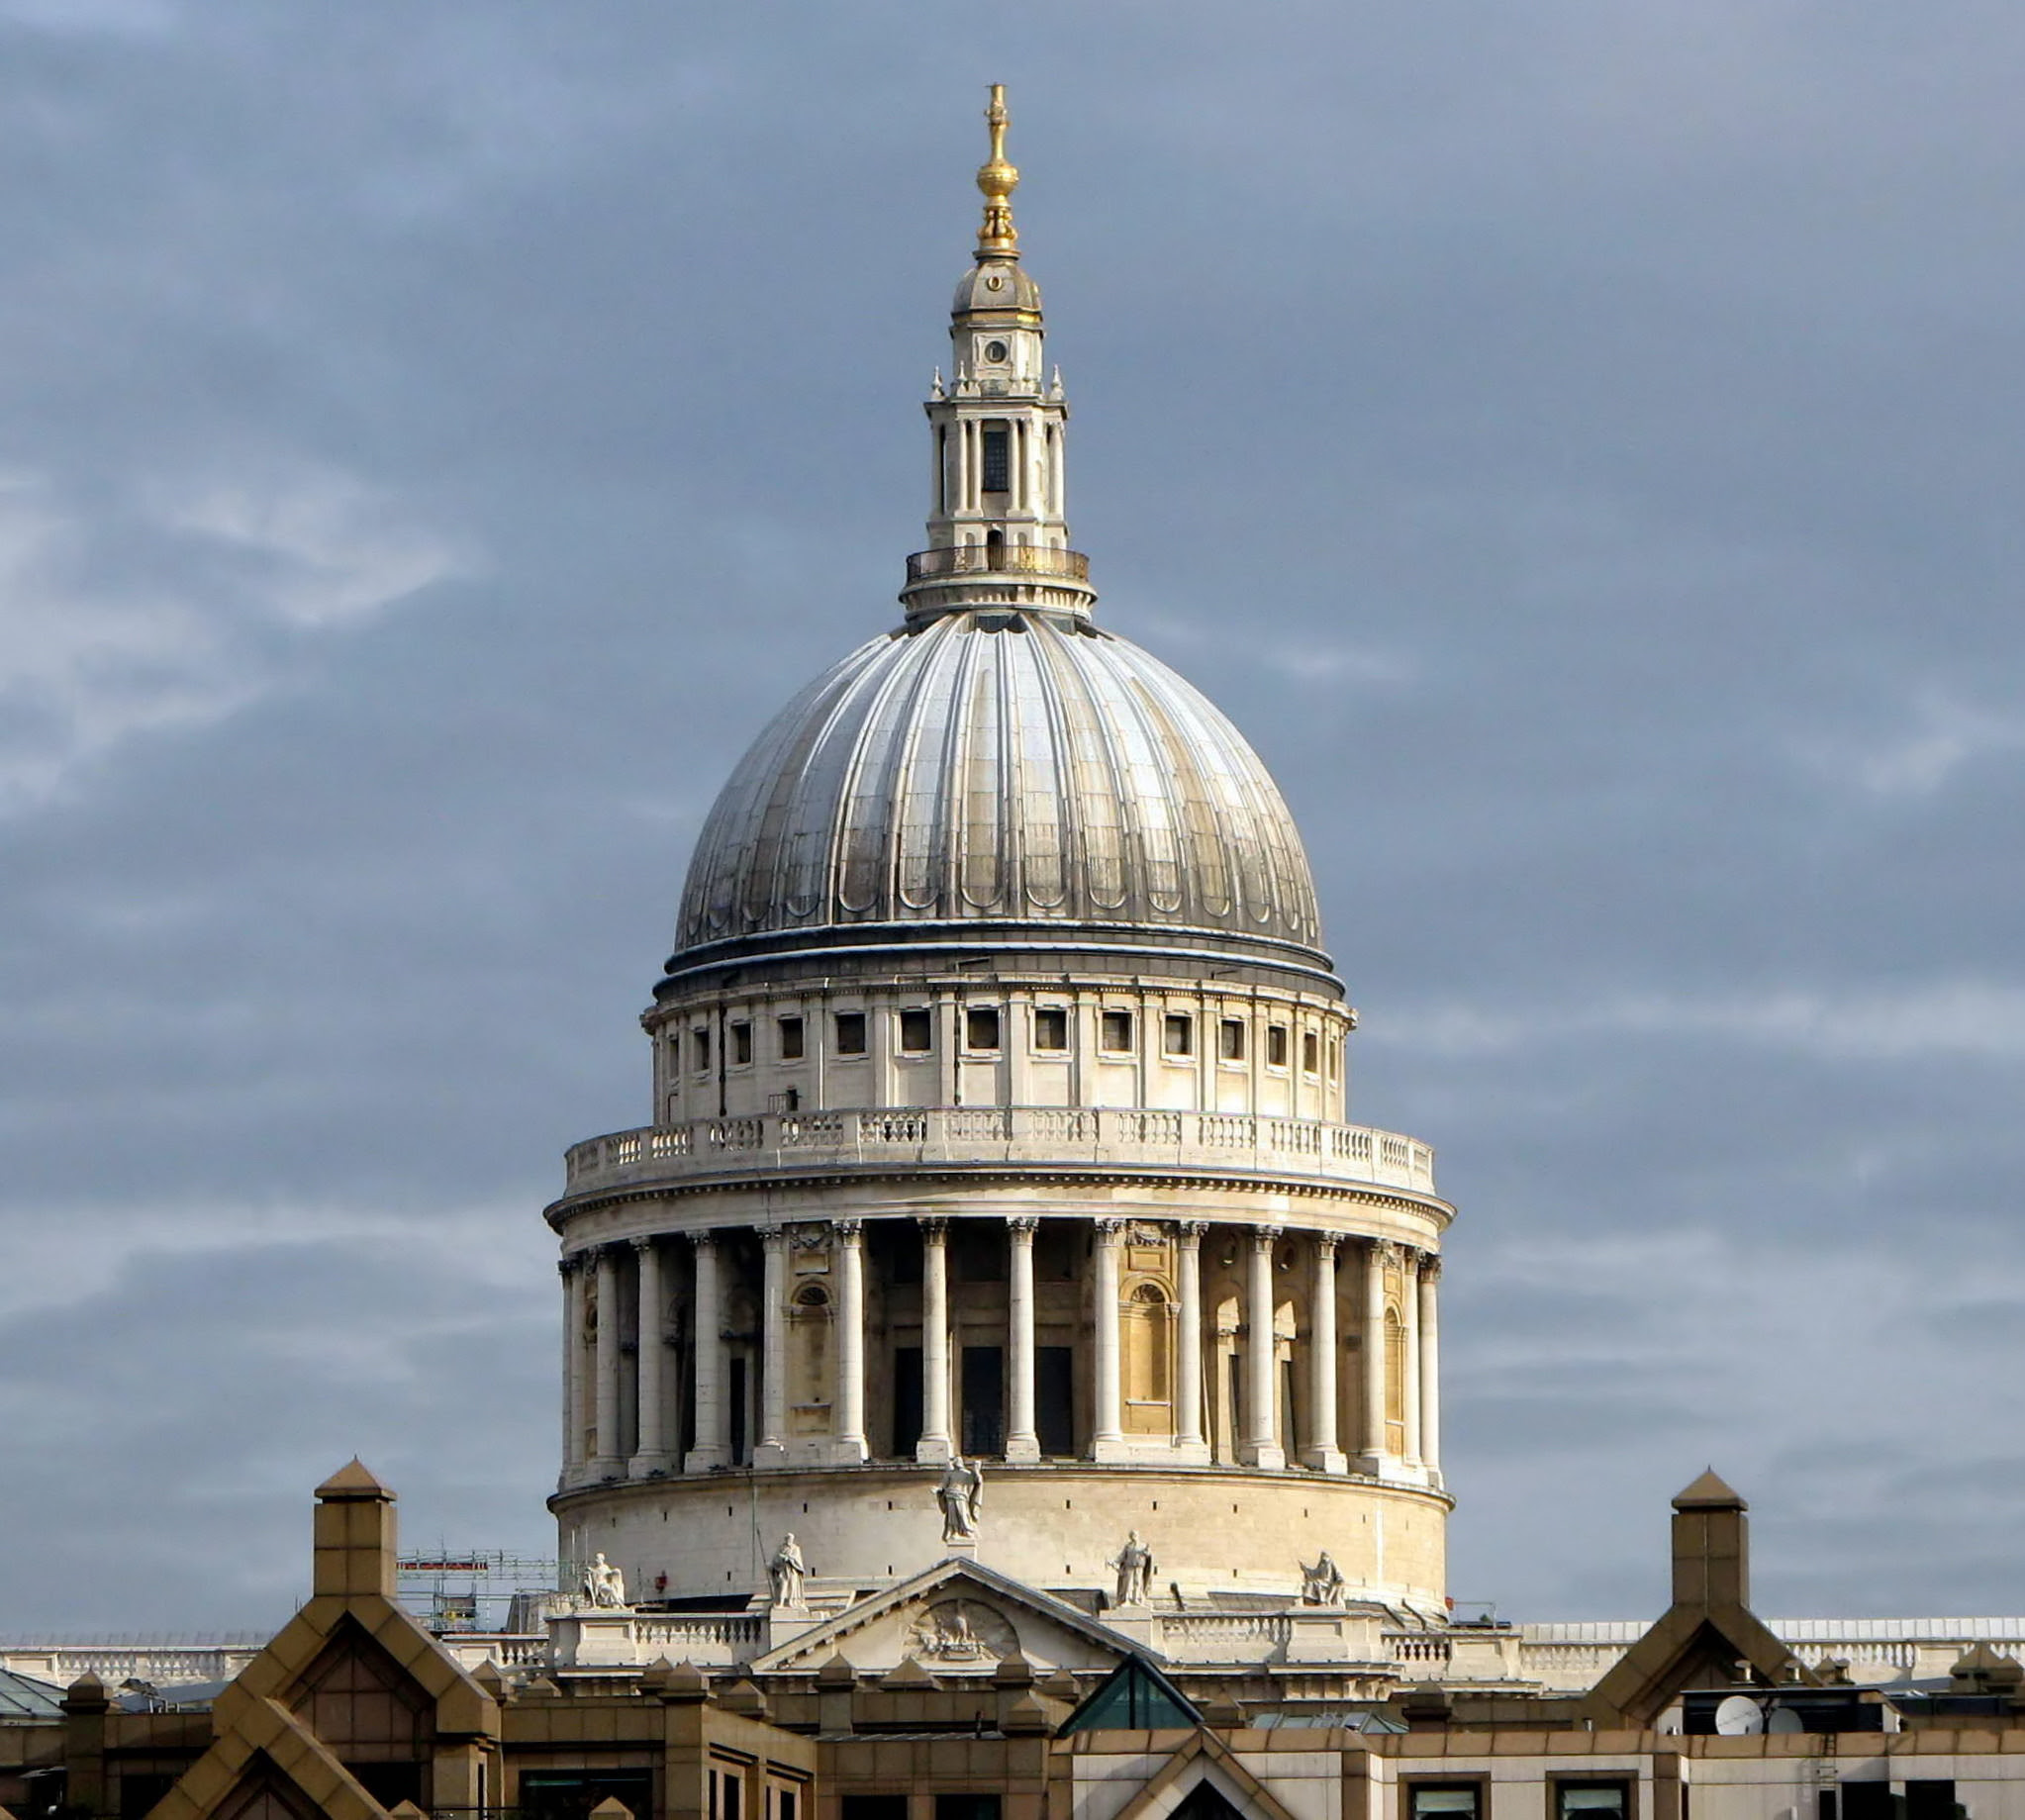 The dome of St. Paul's Cathedral in London, England.